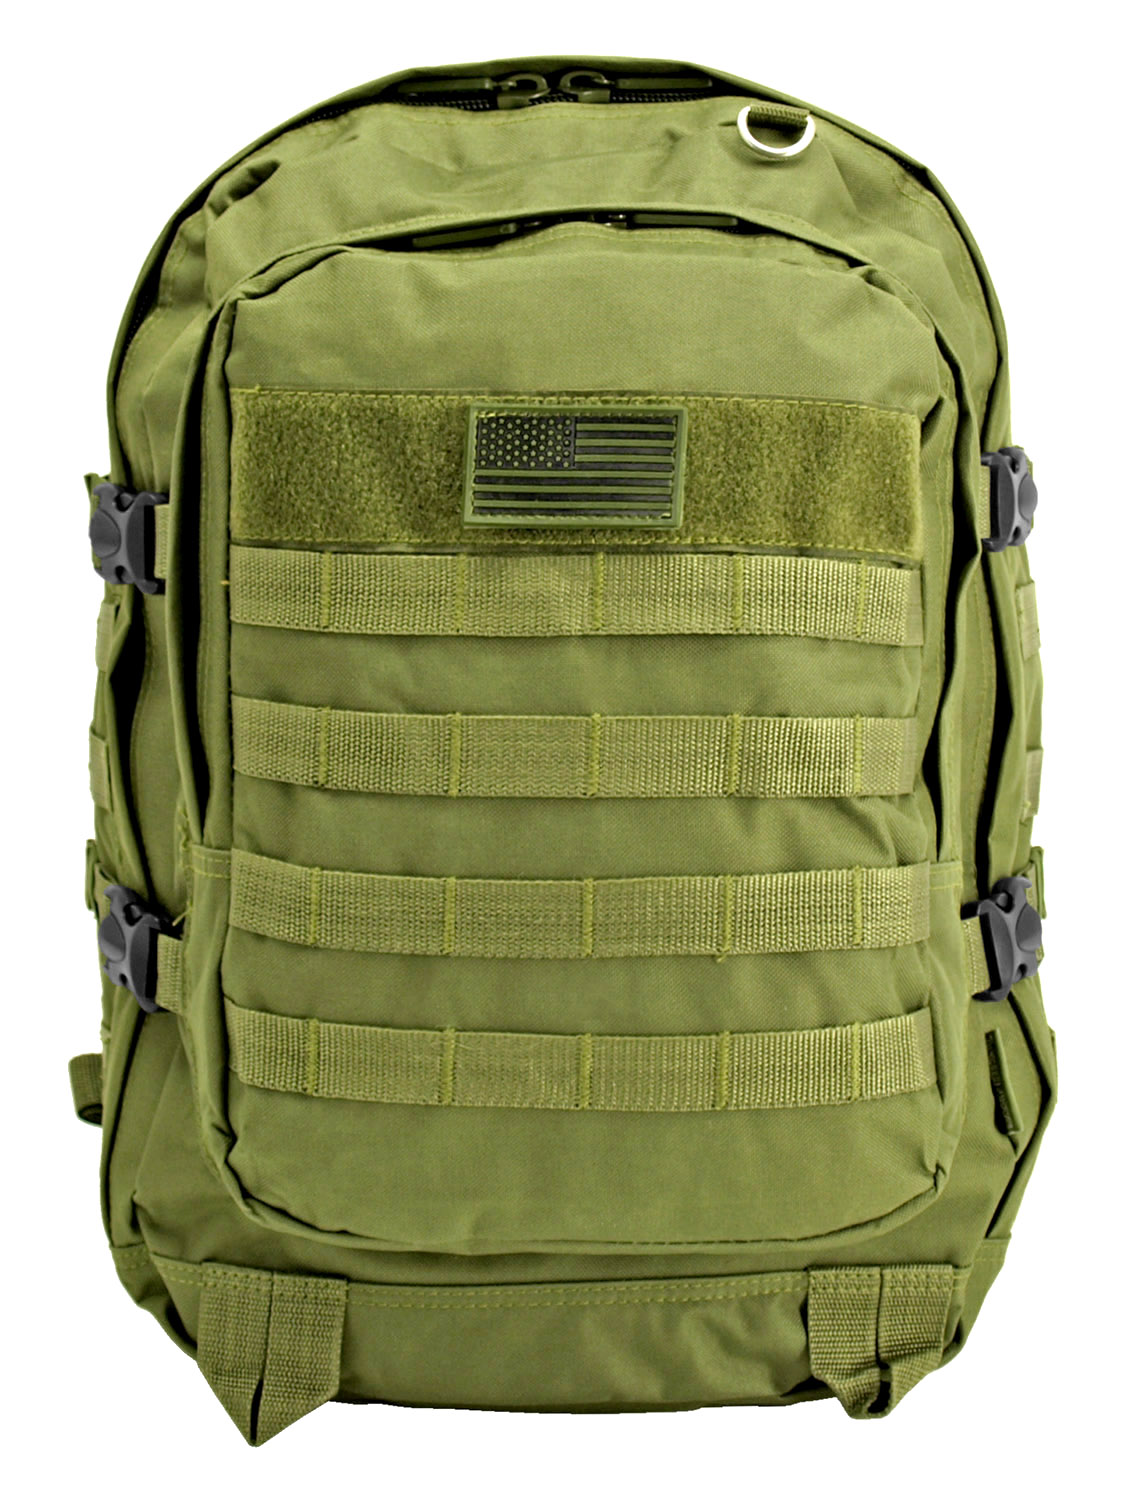 Military Molle Pack - Olive Green